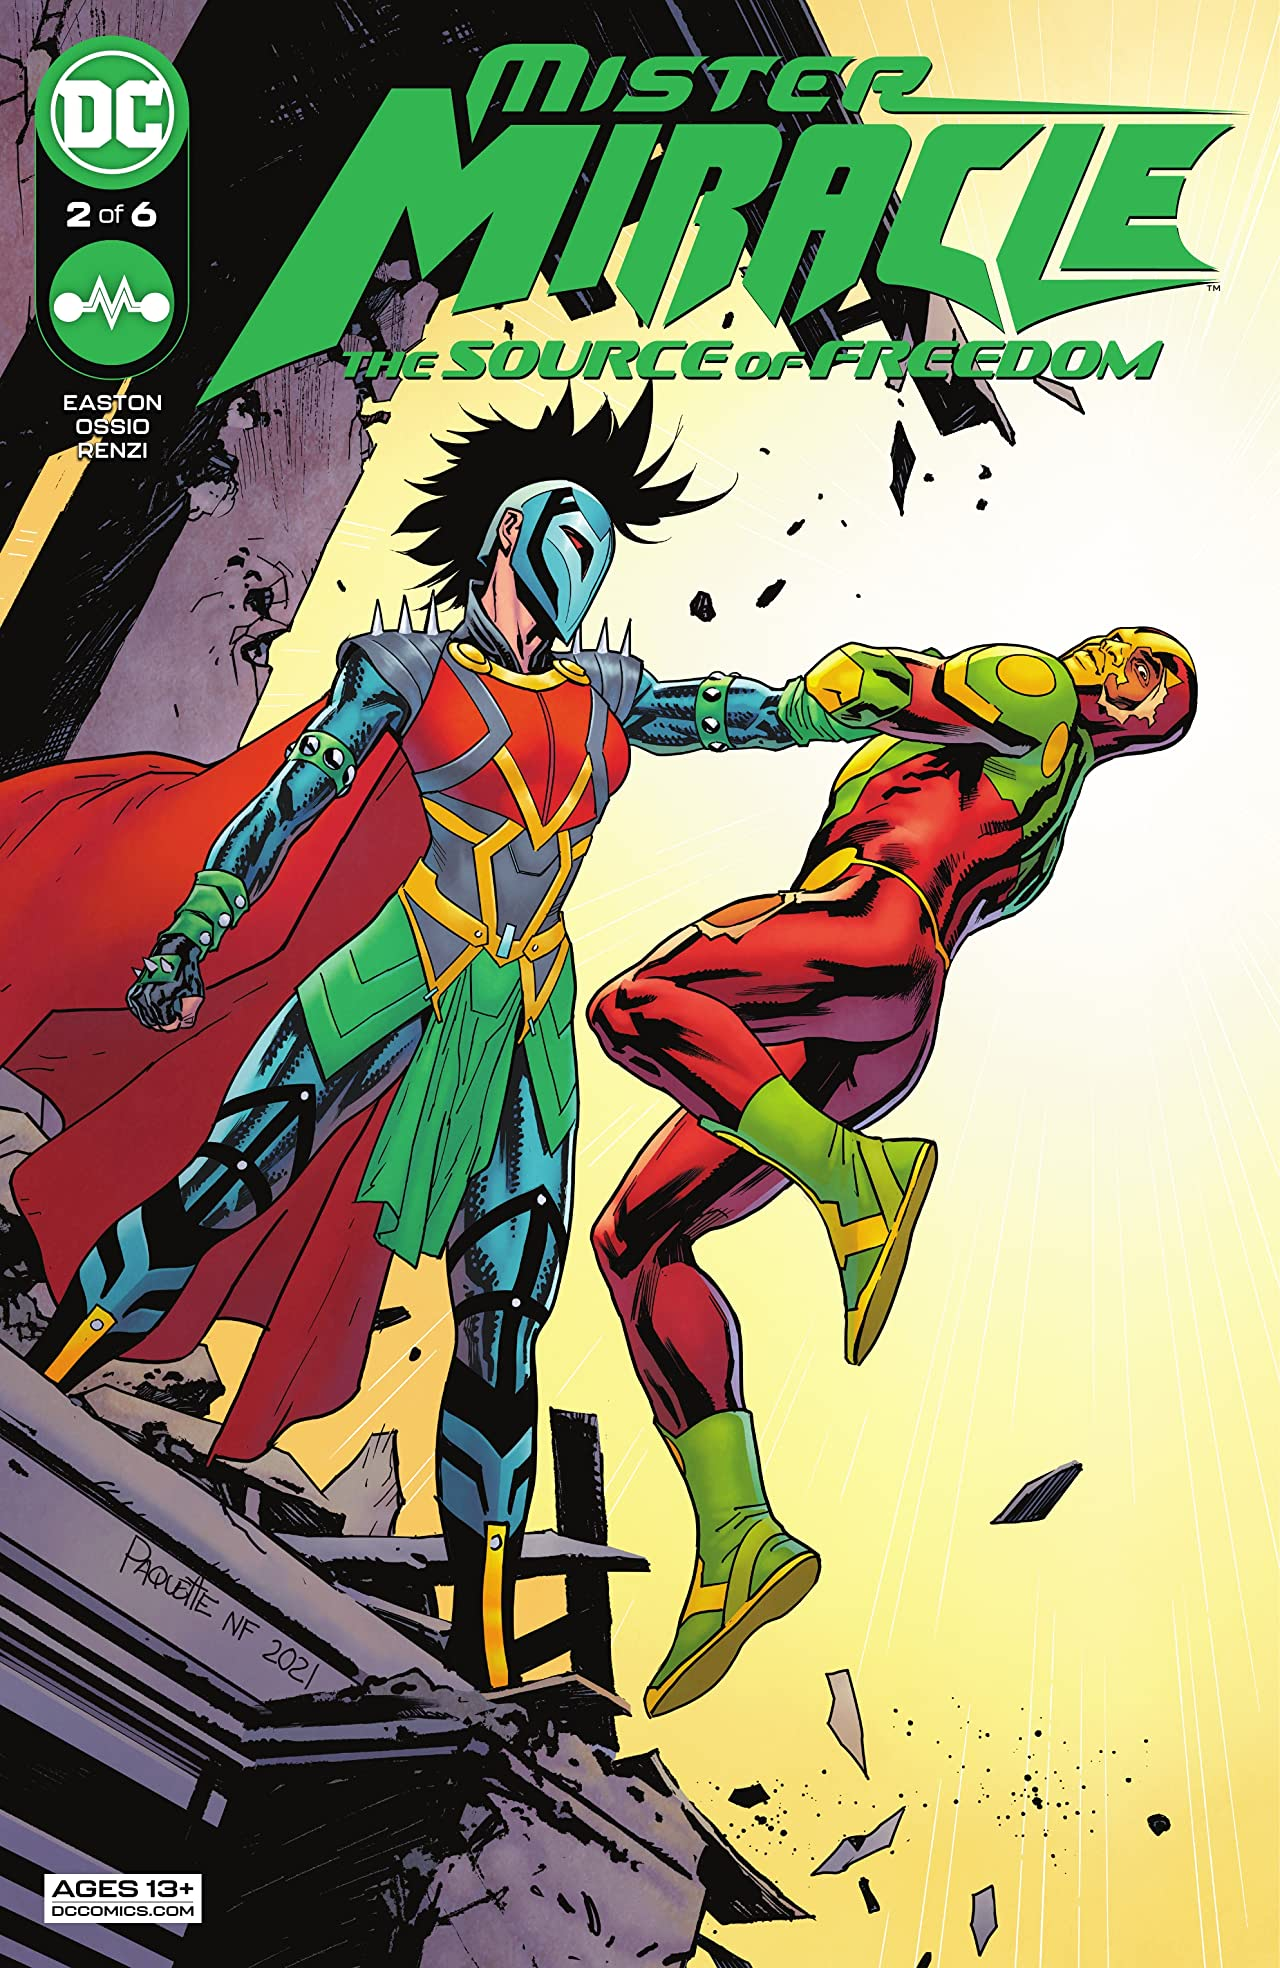 Mister Miracle (2021) #2: The Source of Freedom